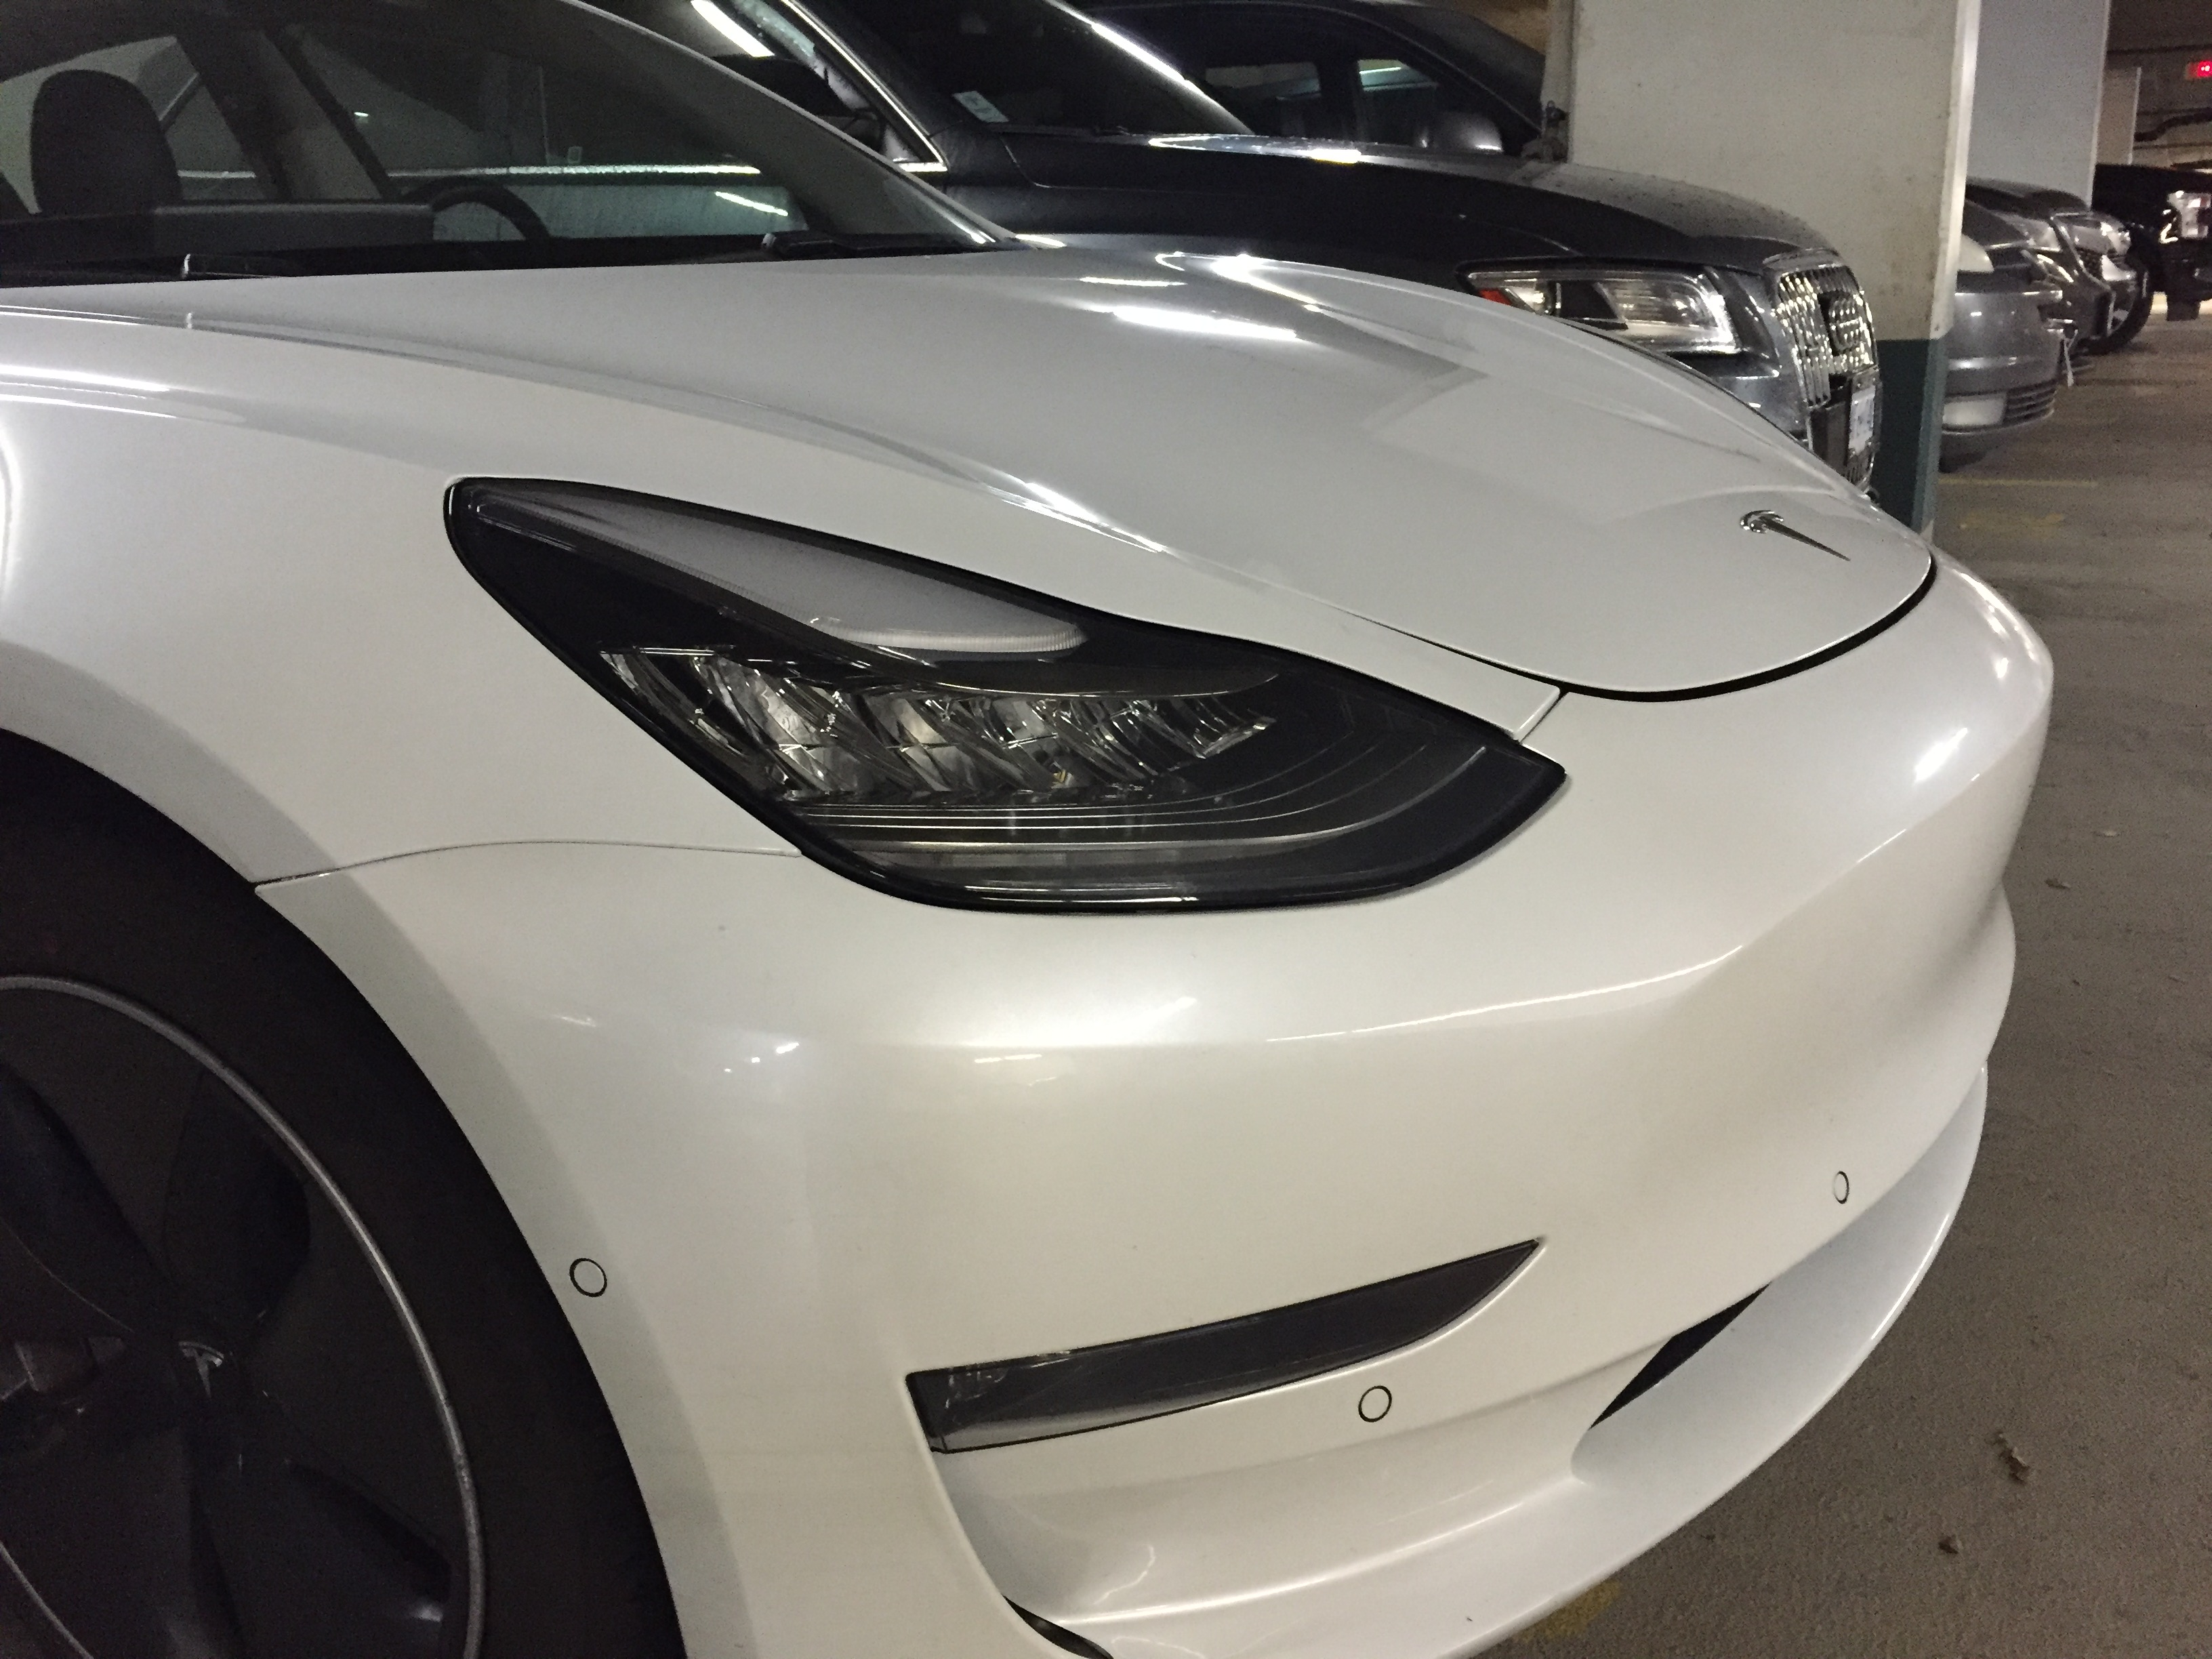 white-tesla-model-3-rc-87-vancouver-3